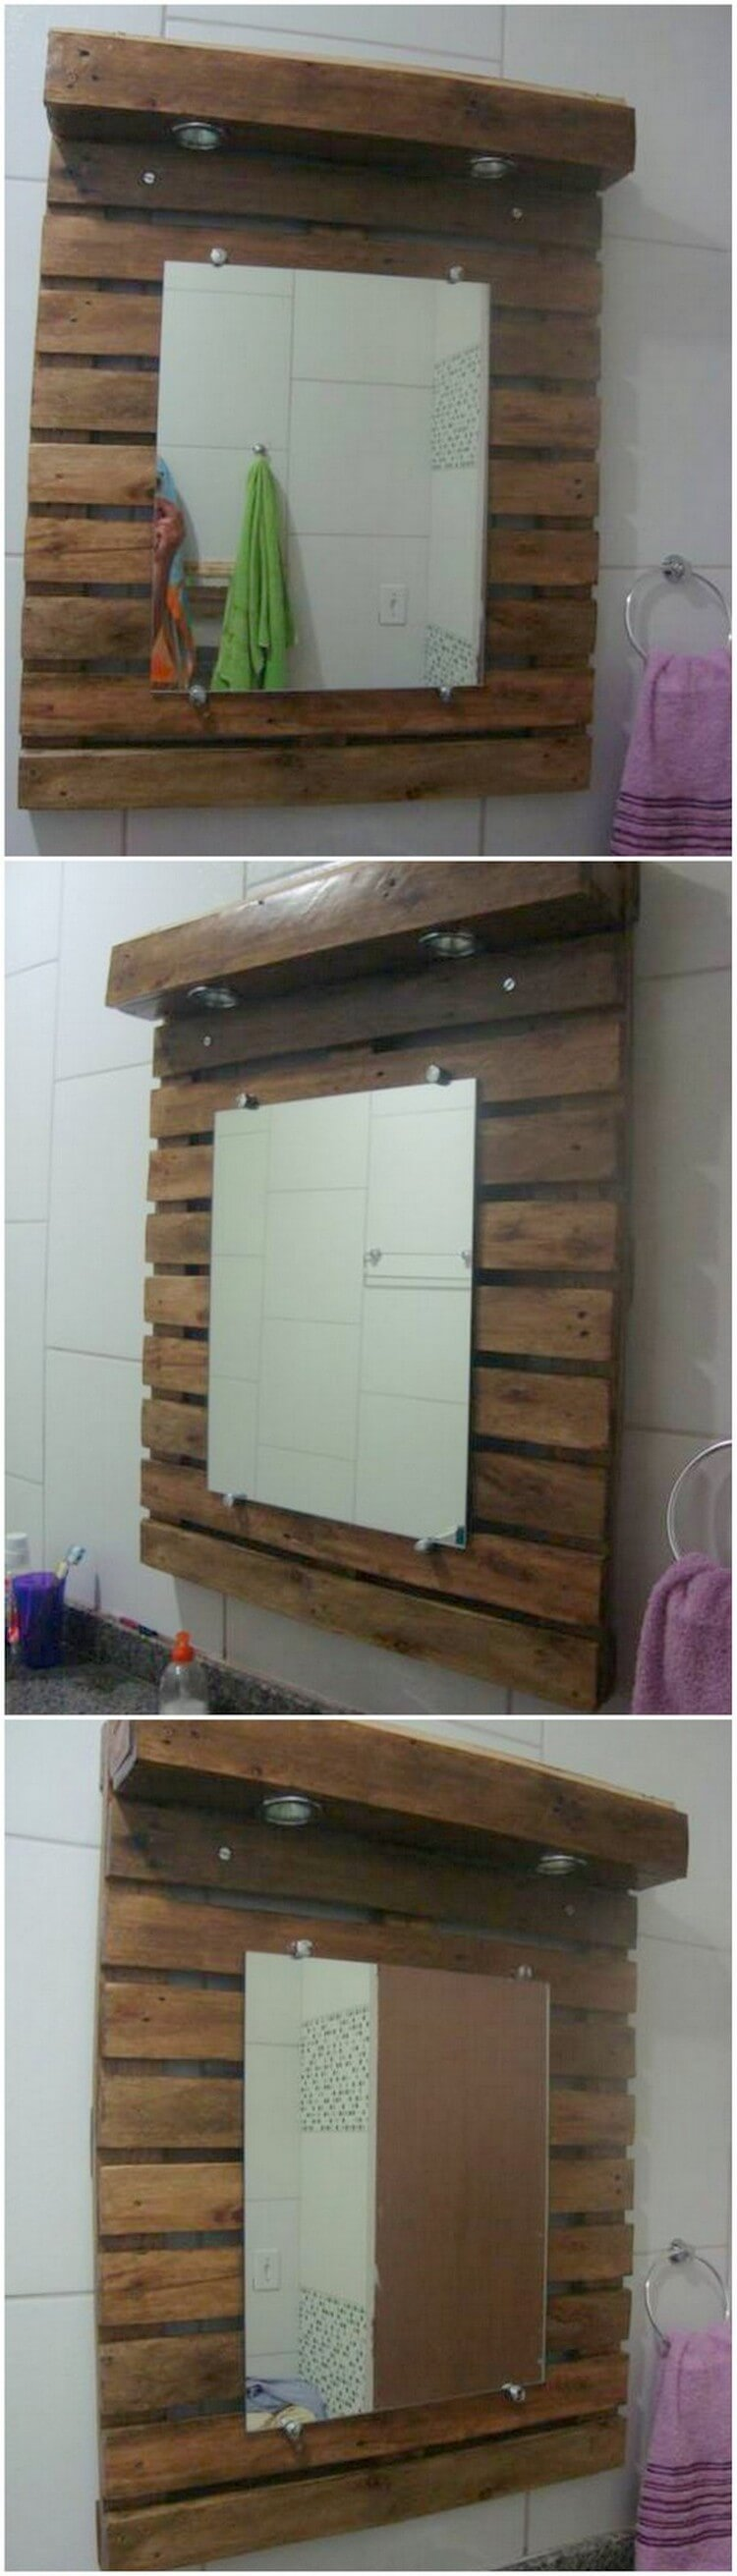 Creative Reusing Ideas For Old Wooden Pallets Pallet